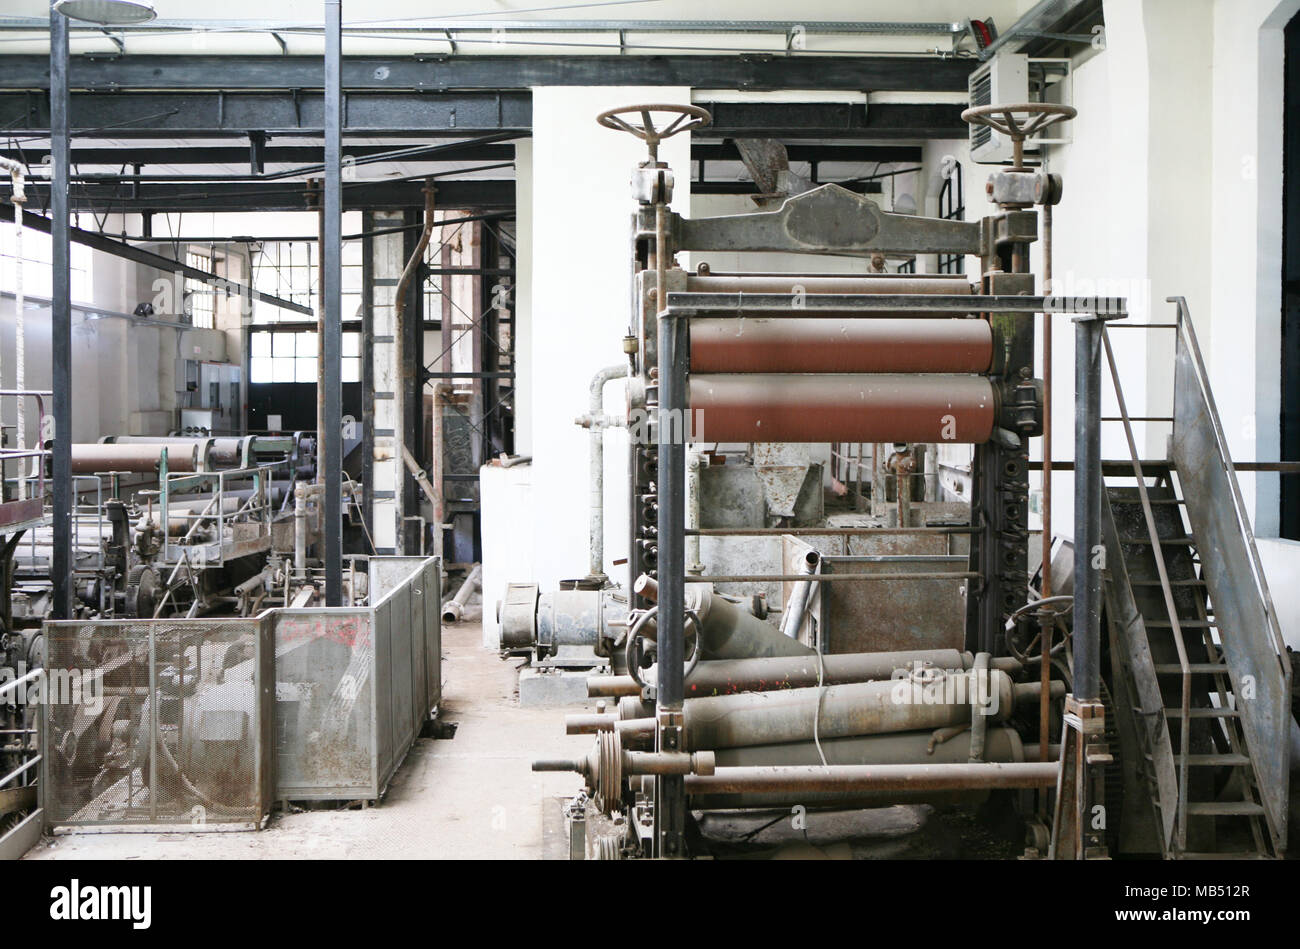 Old run down industrial plant machinery with cogs and gear wheels - Stock Image